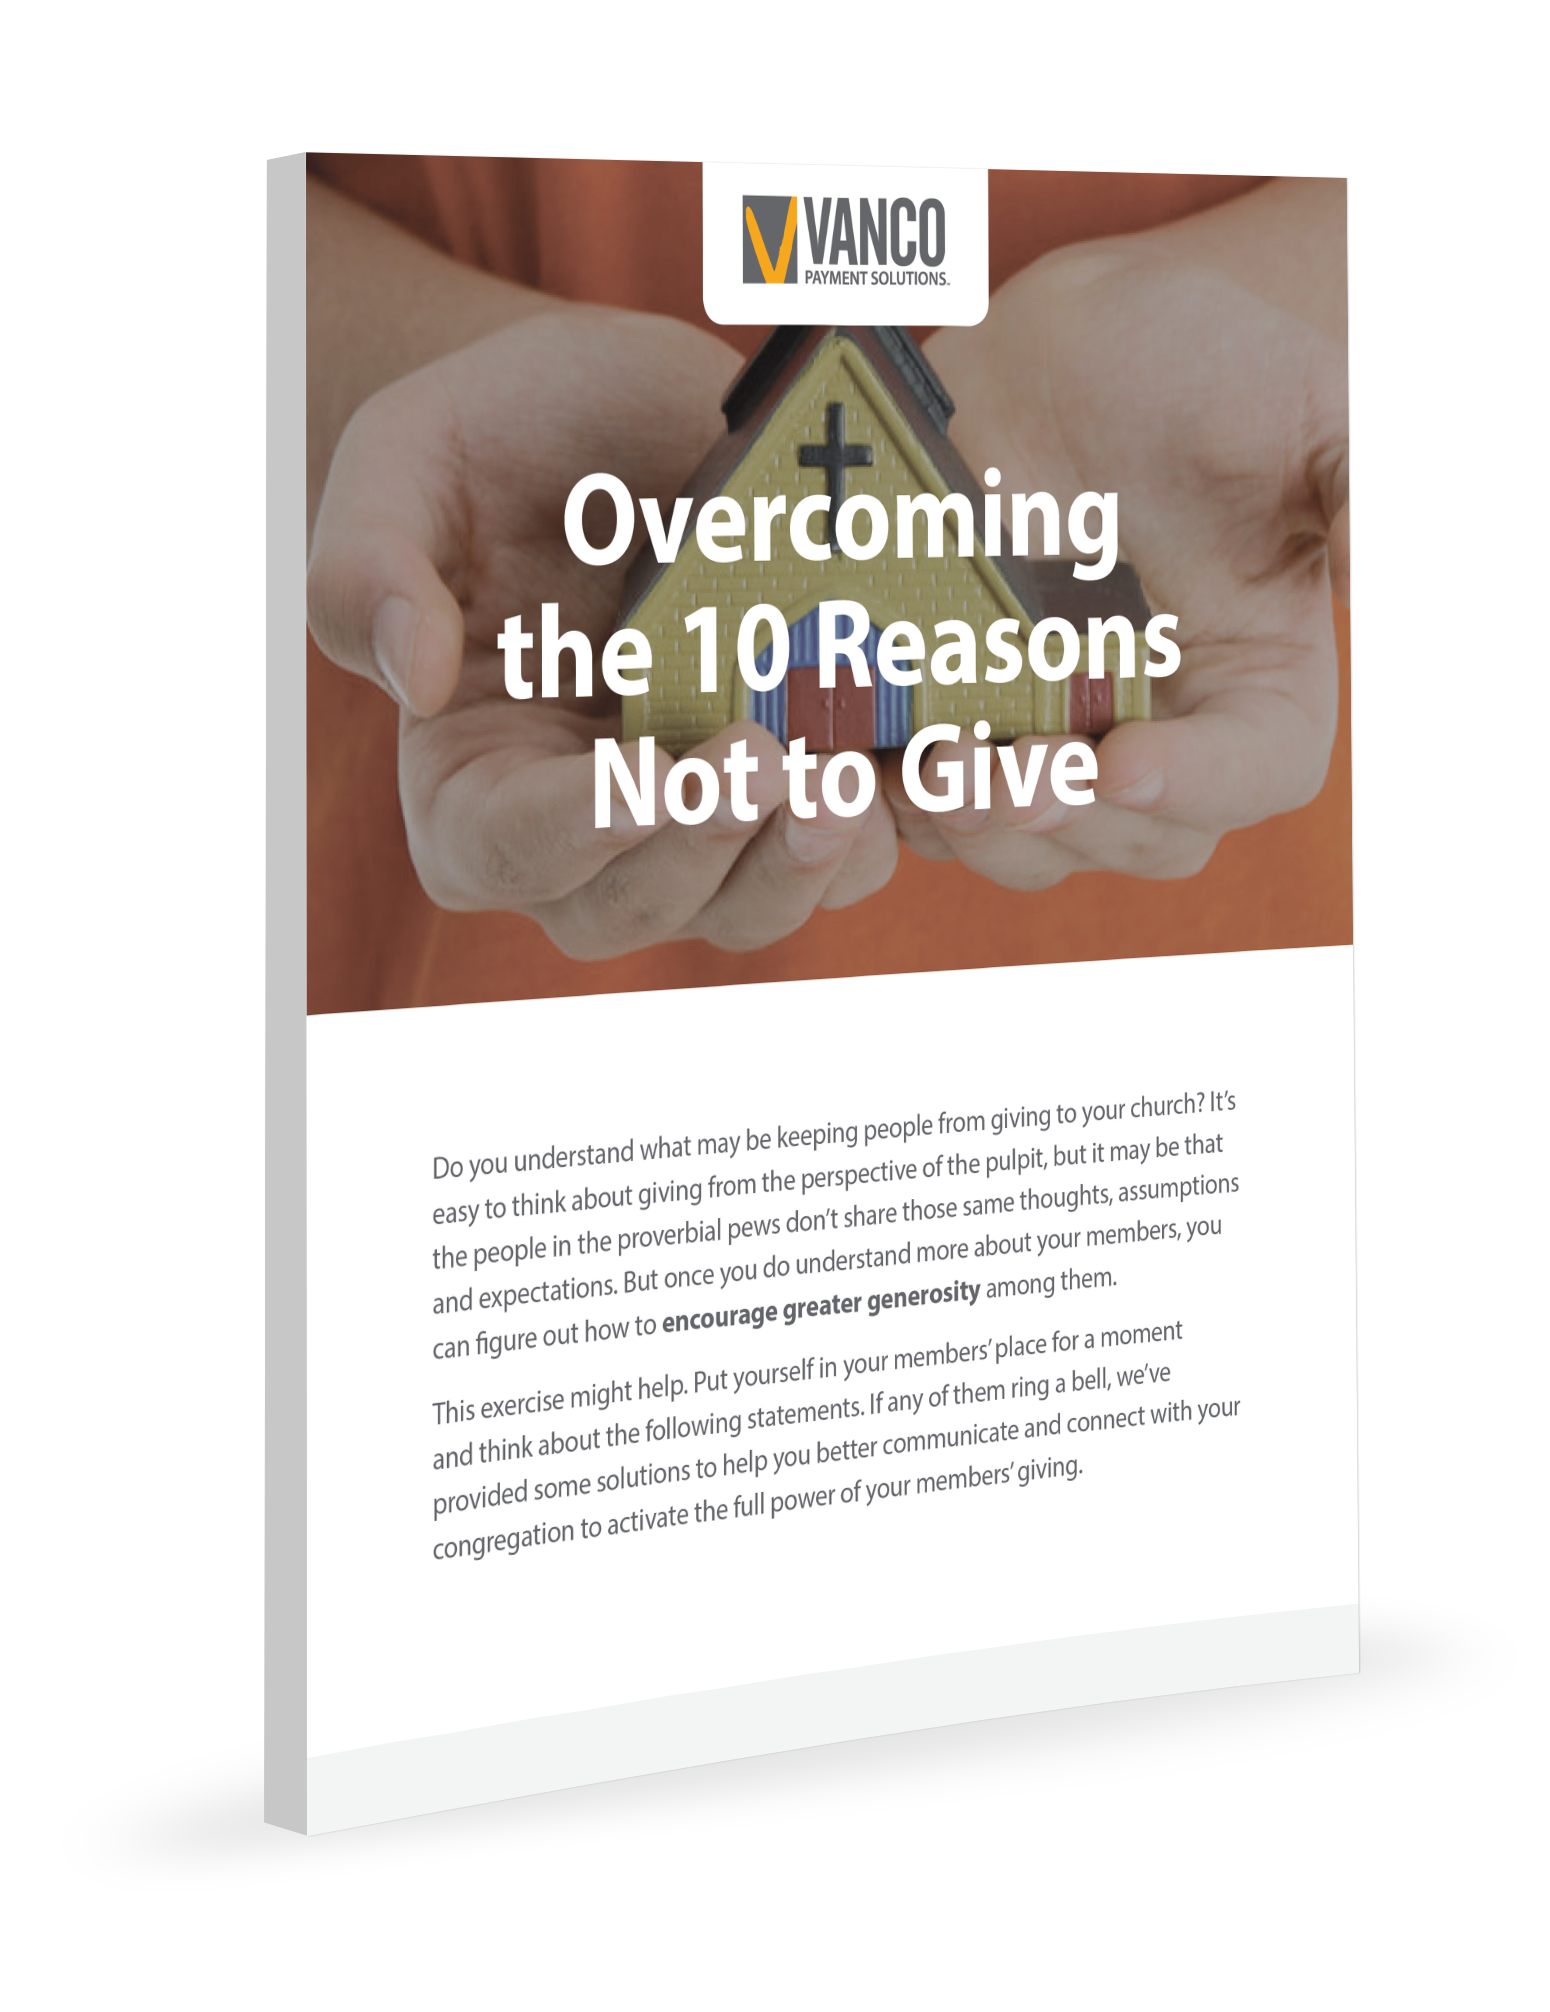 Overcoming the 10 Reasons Not to Give